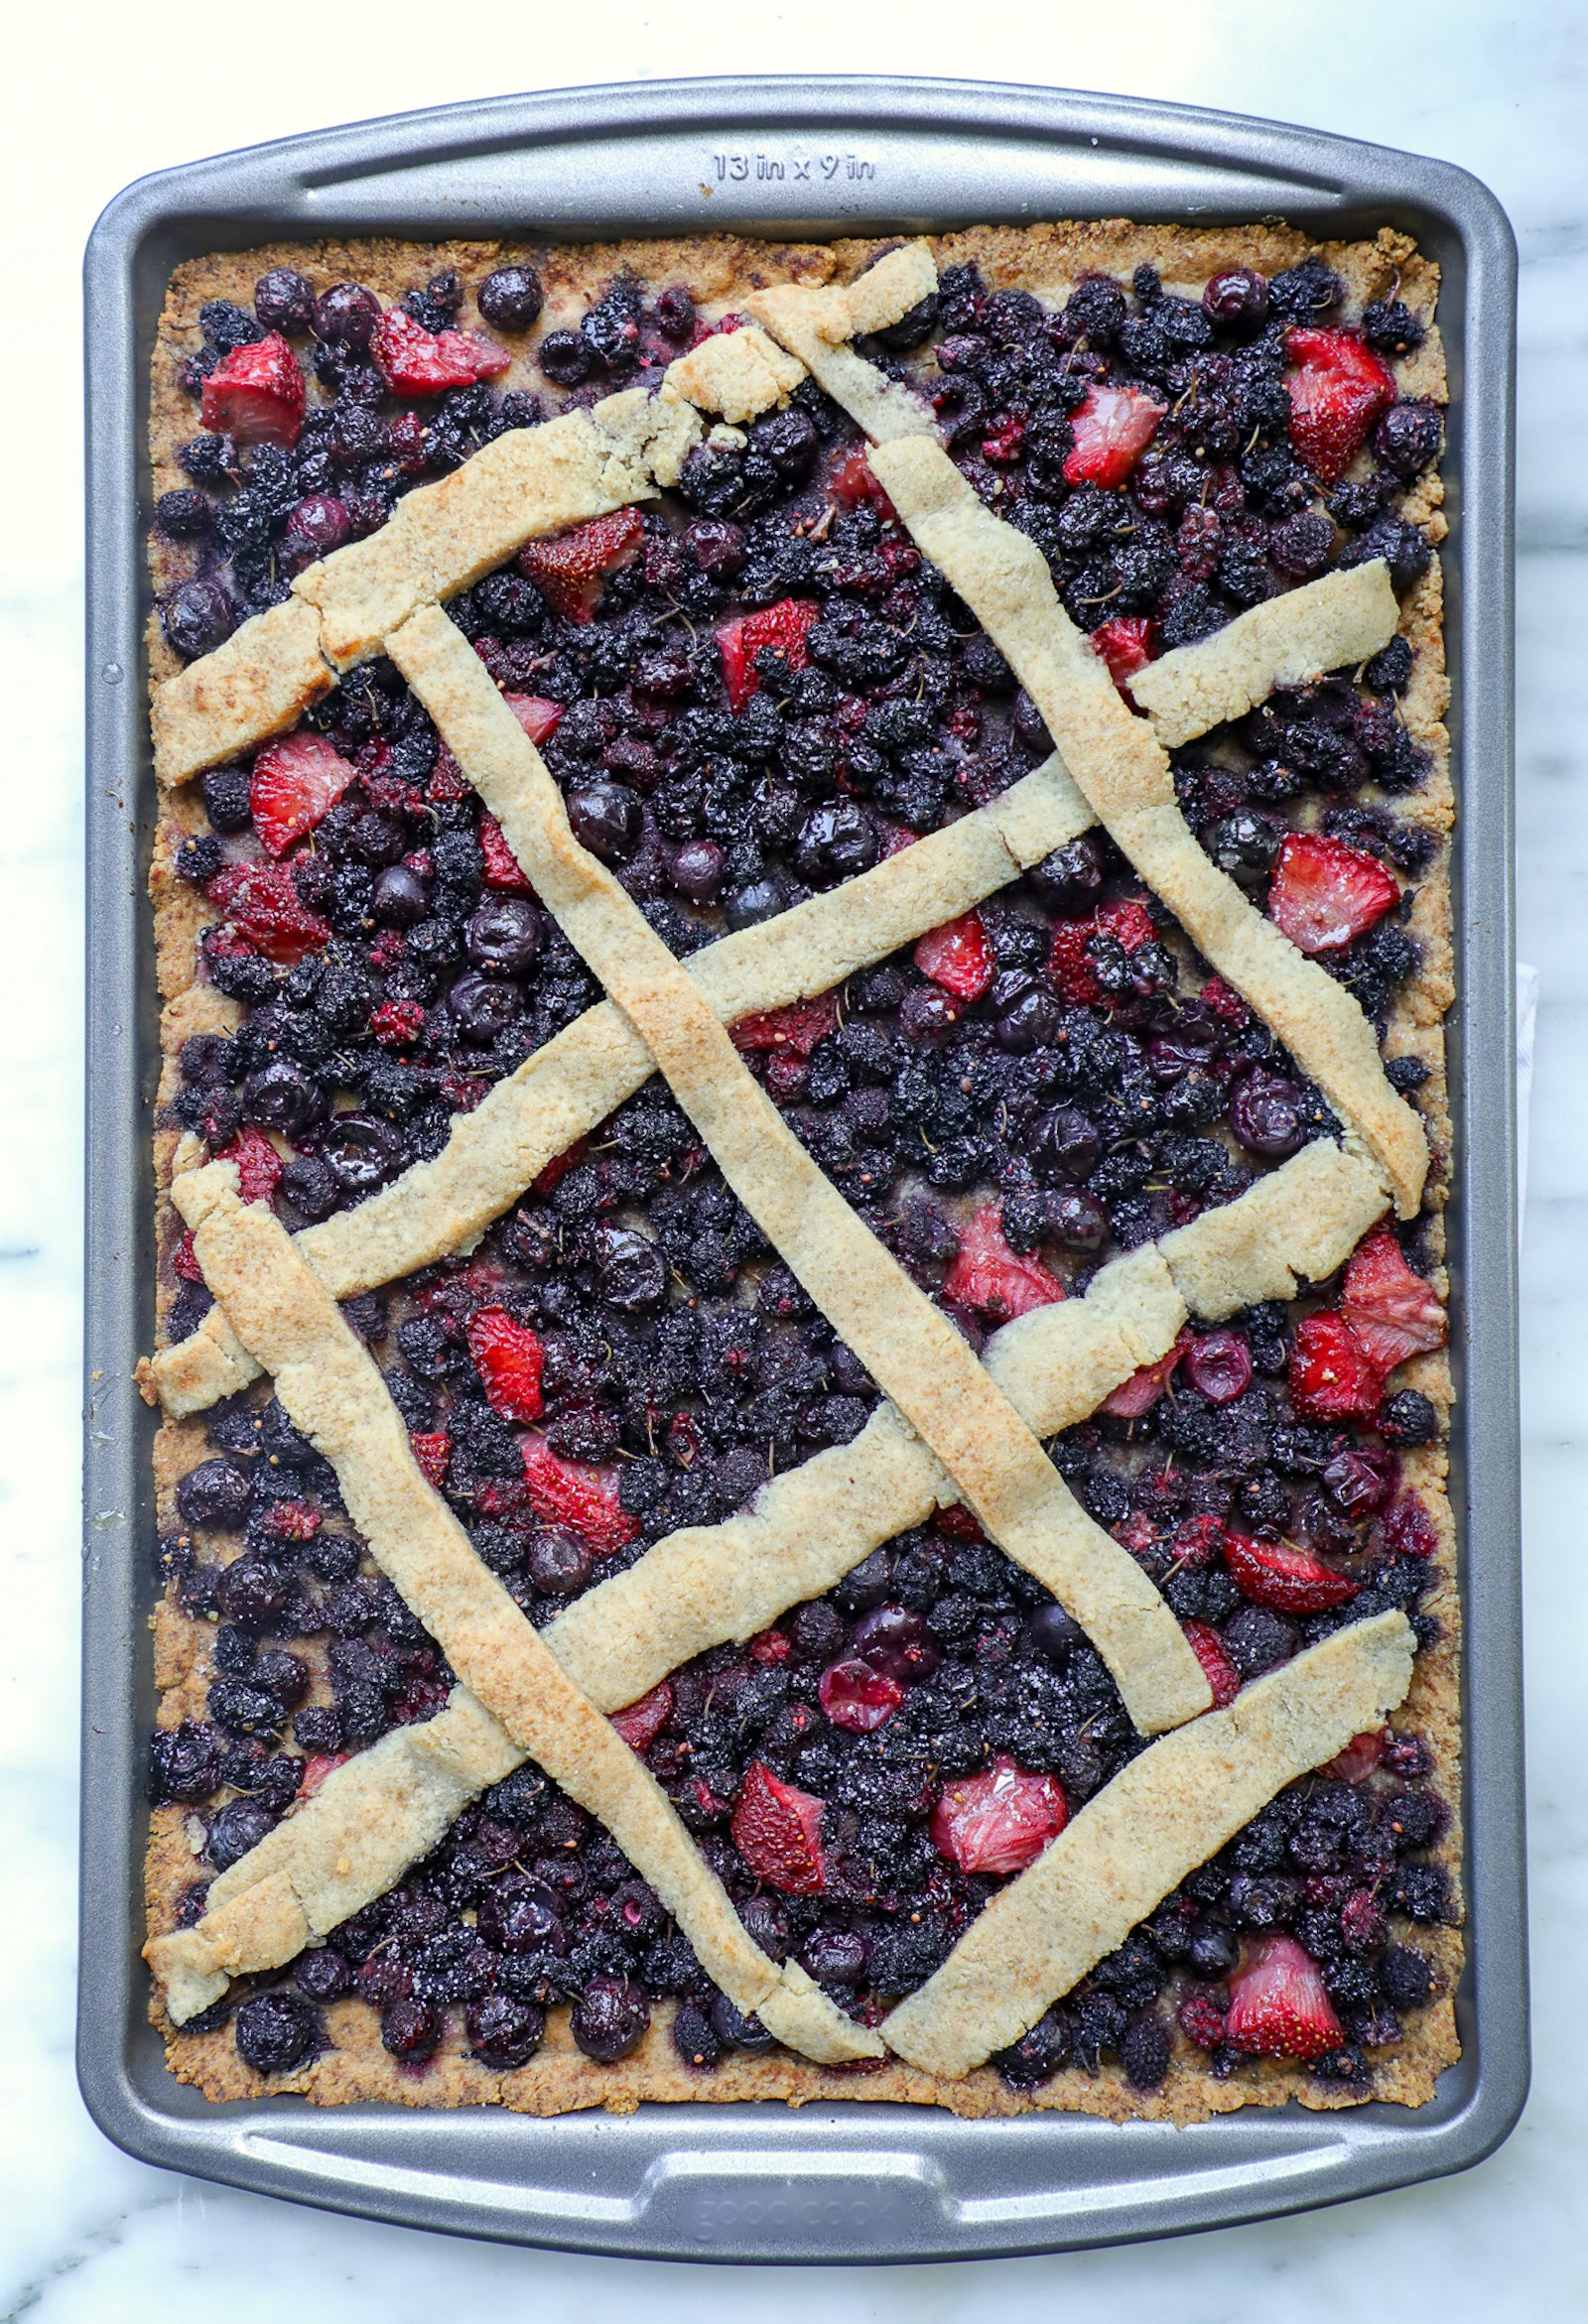 Keto Mixed Berry Slab Pie fully baked and ready to serve